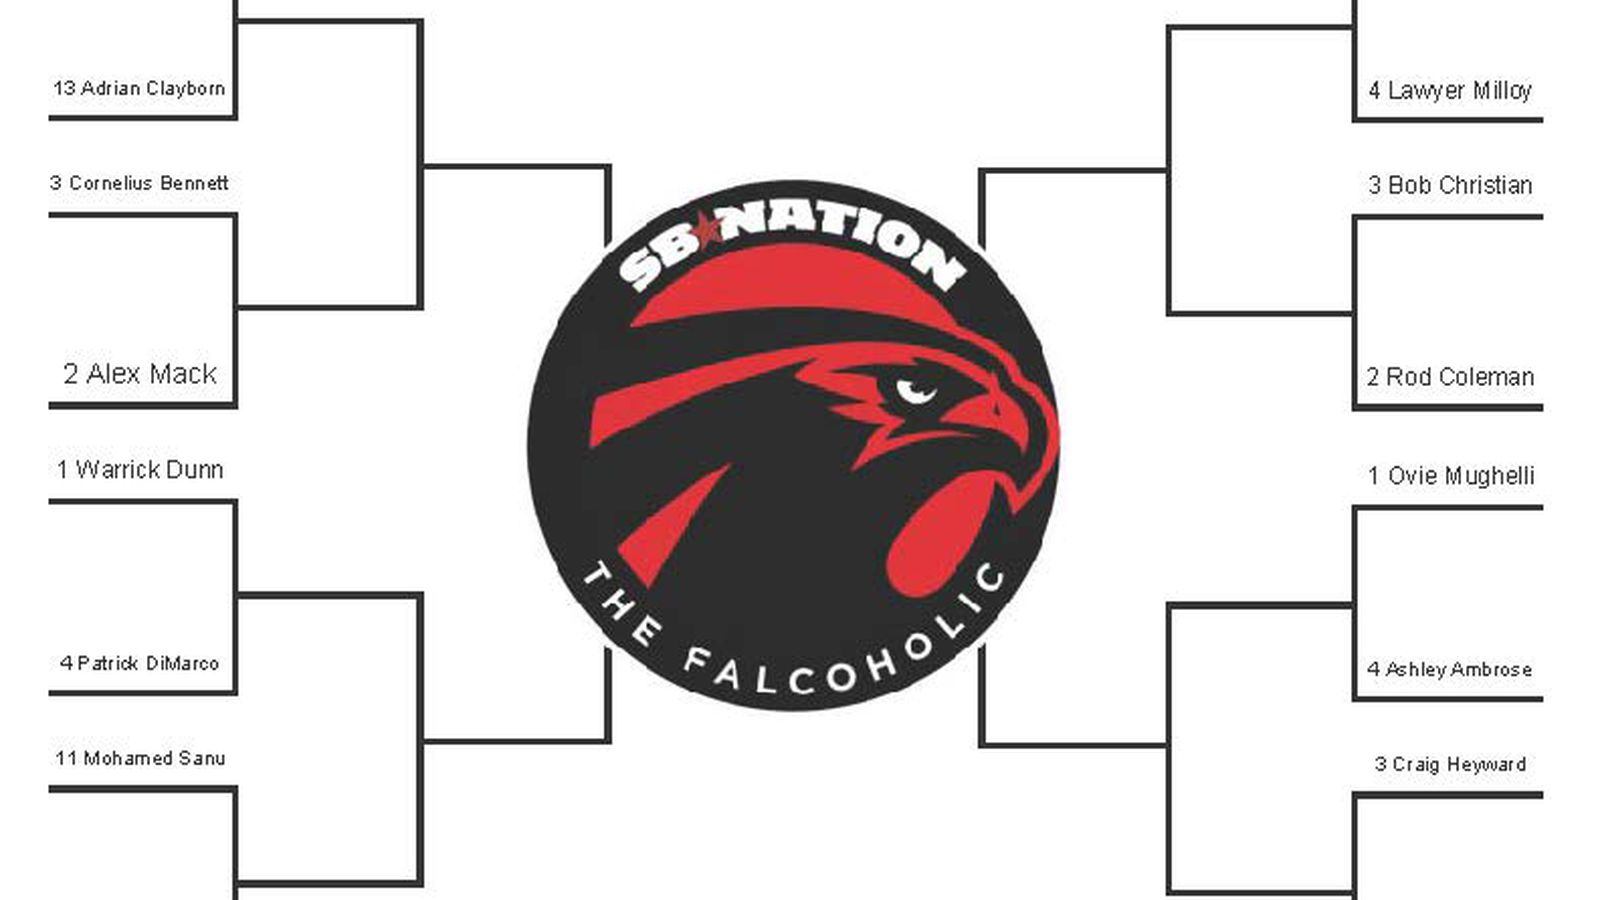 Falcons_ufa_bracket_sweet_16.0